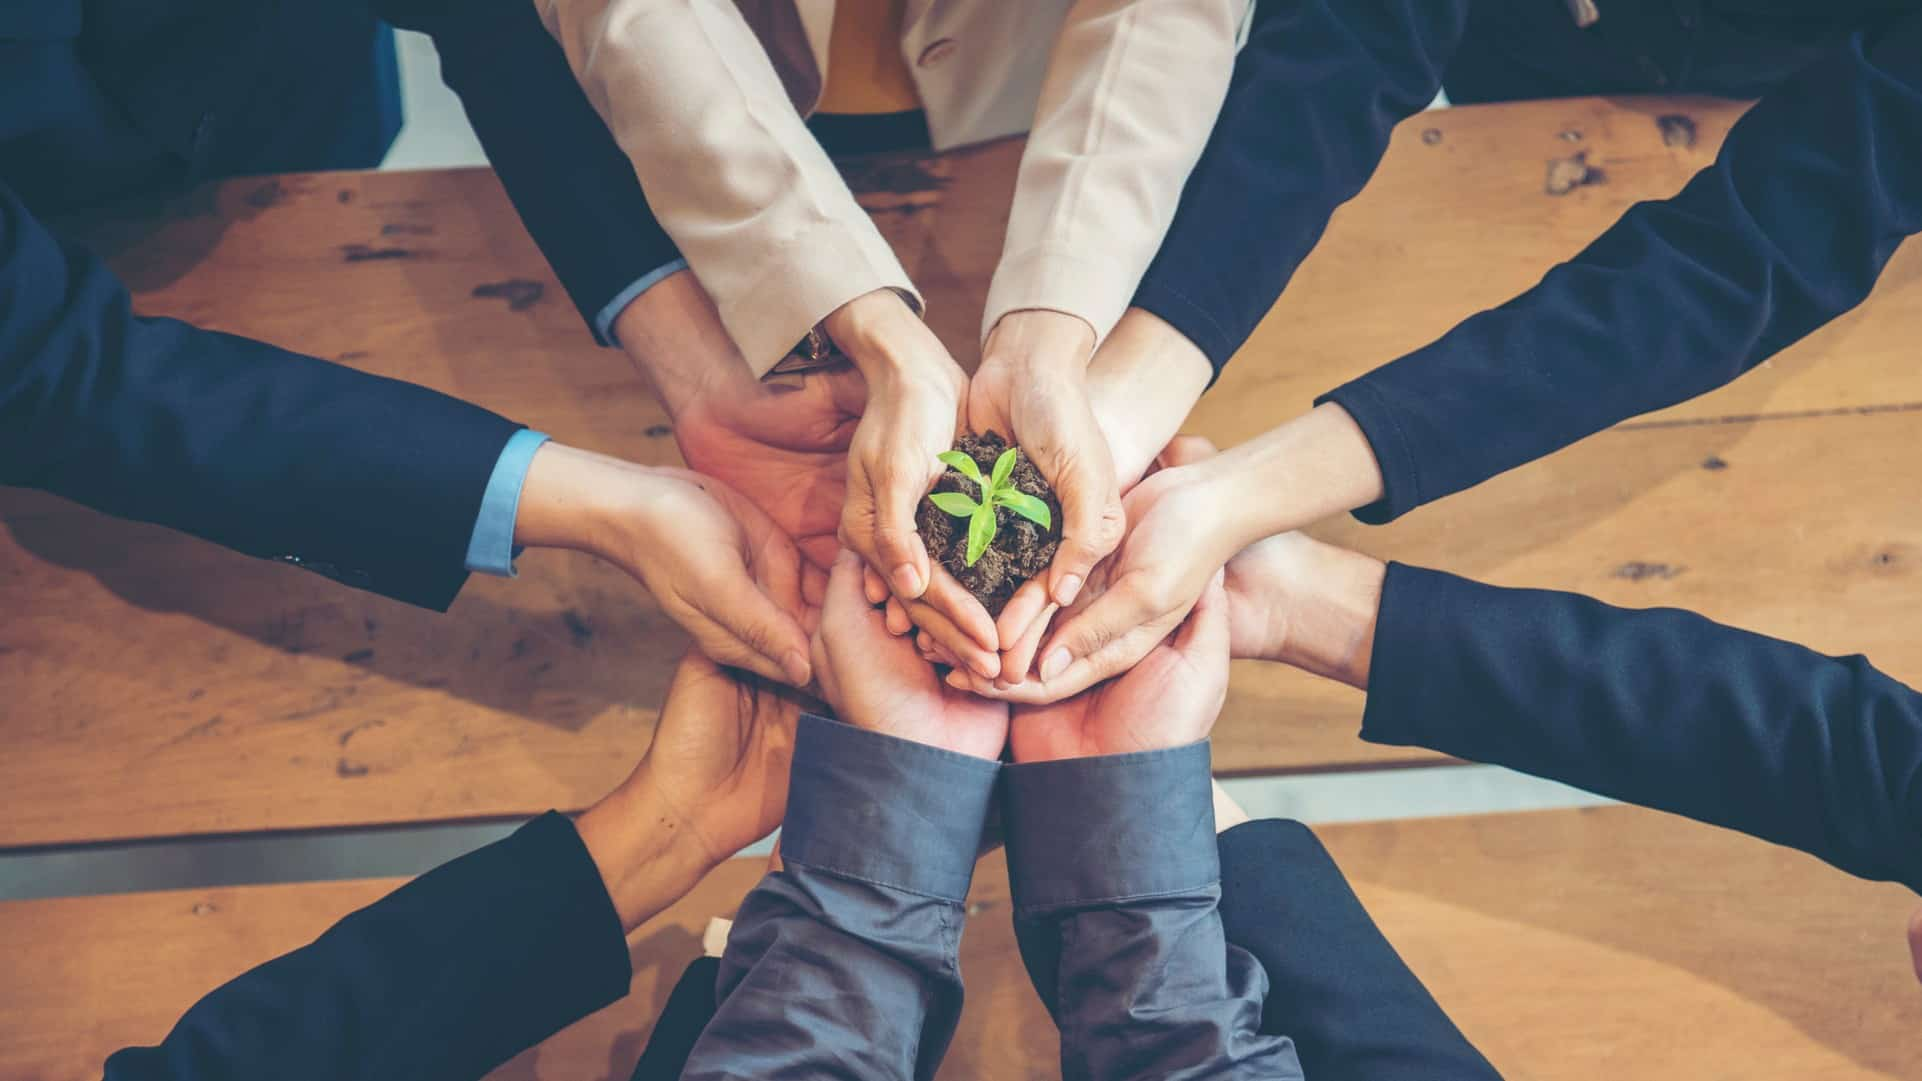 A circle of hands from business leads cupping a green leaf in soil, indicating ASX companies embracing the concept of ESG and sustainable business practices